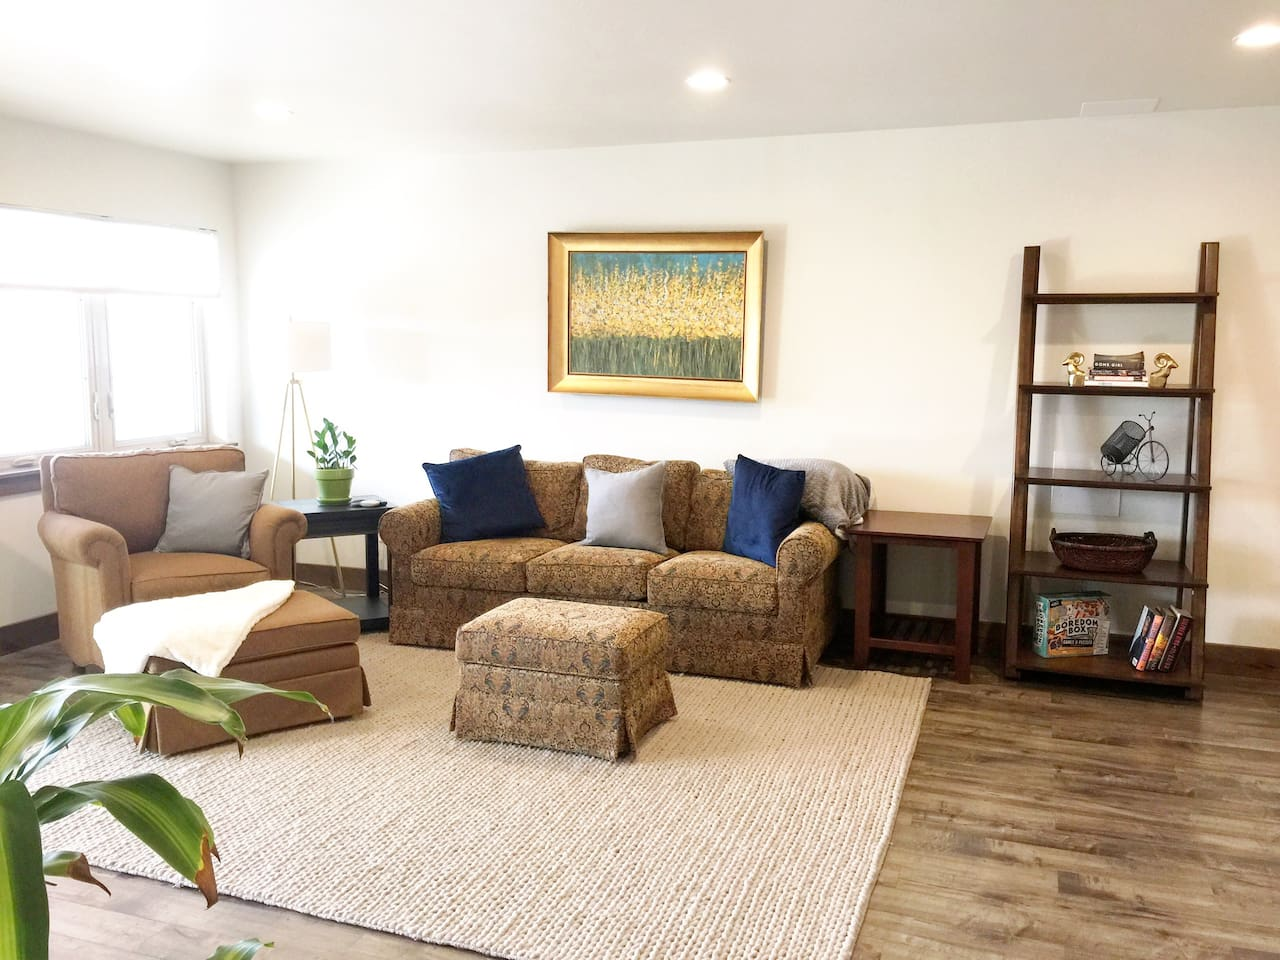 The living area is a comfortable place to wind down and catch the last few rays of sunlight.